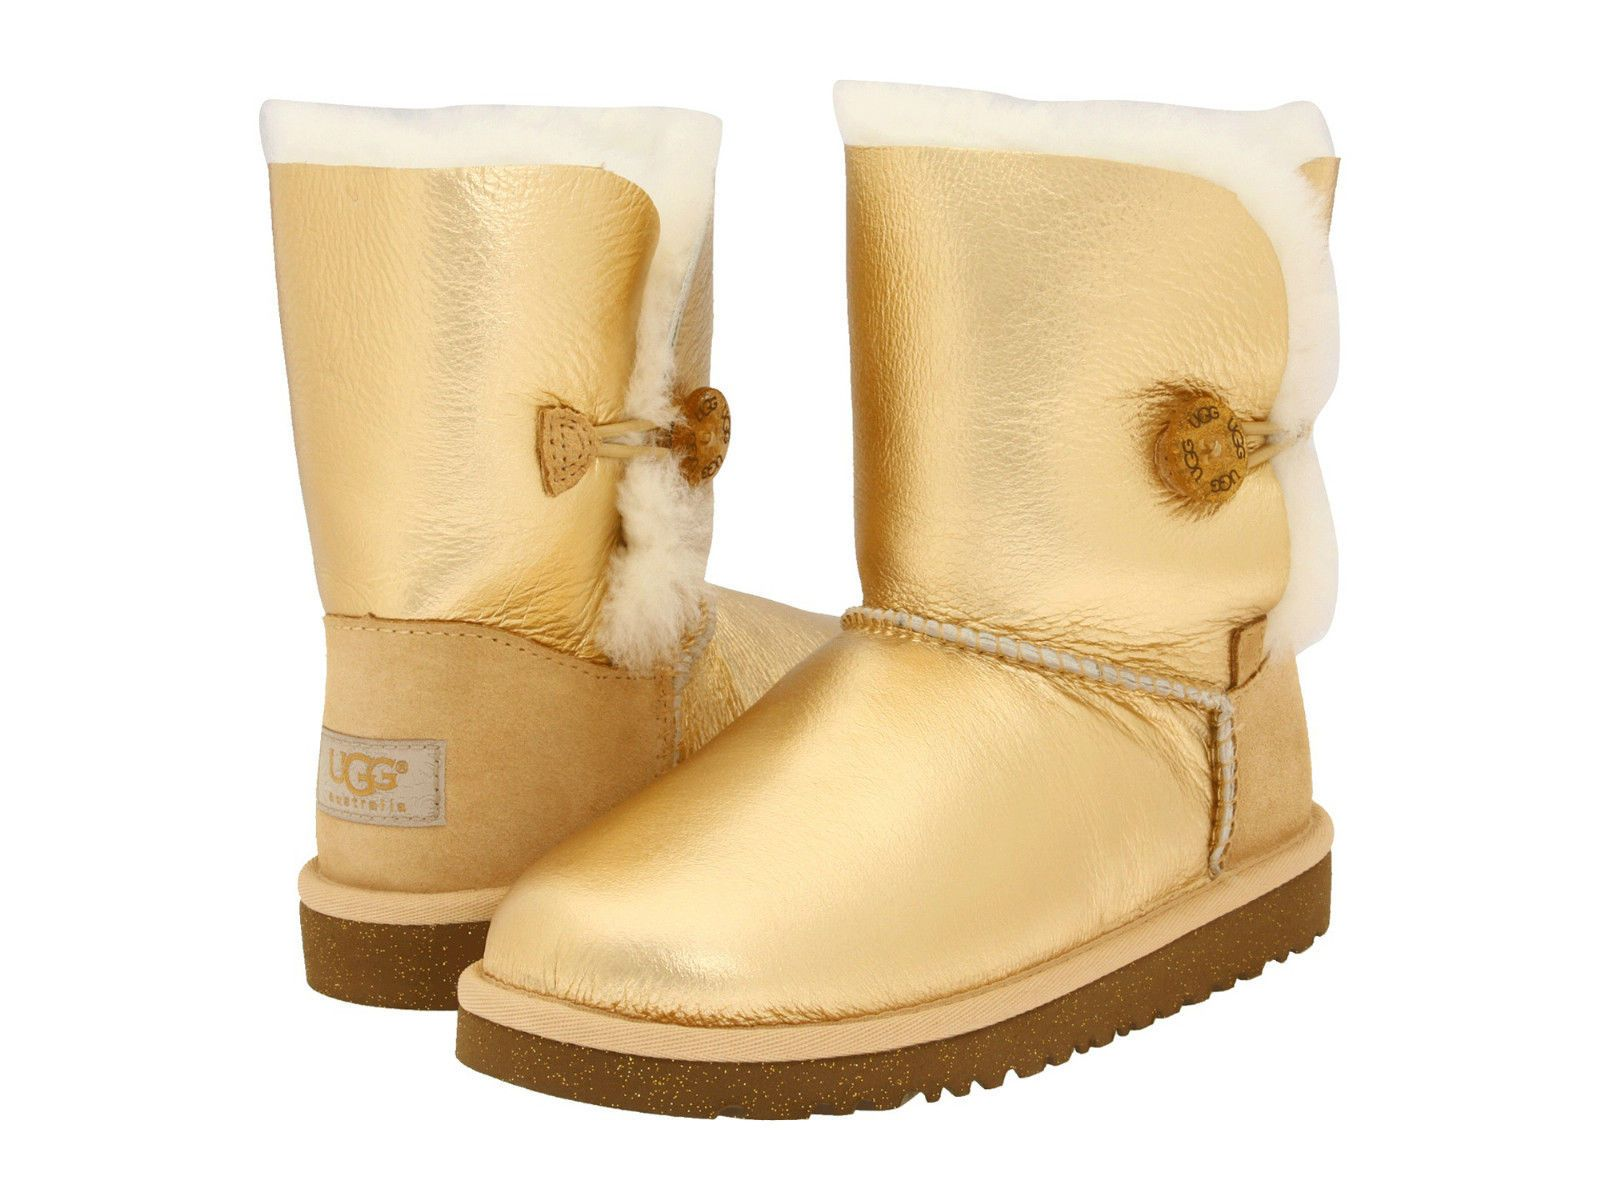 New In Box Ugg Kids Bailey Button Metallic Gold Boots Sz 3 Youth Op Co Boots Womens Boots Ugg Boots Cheap